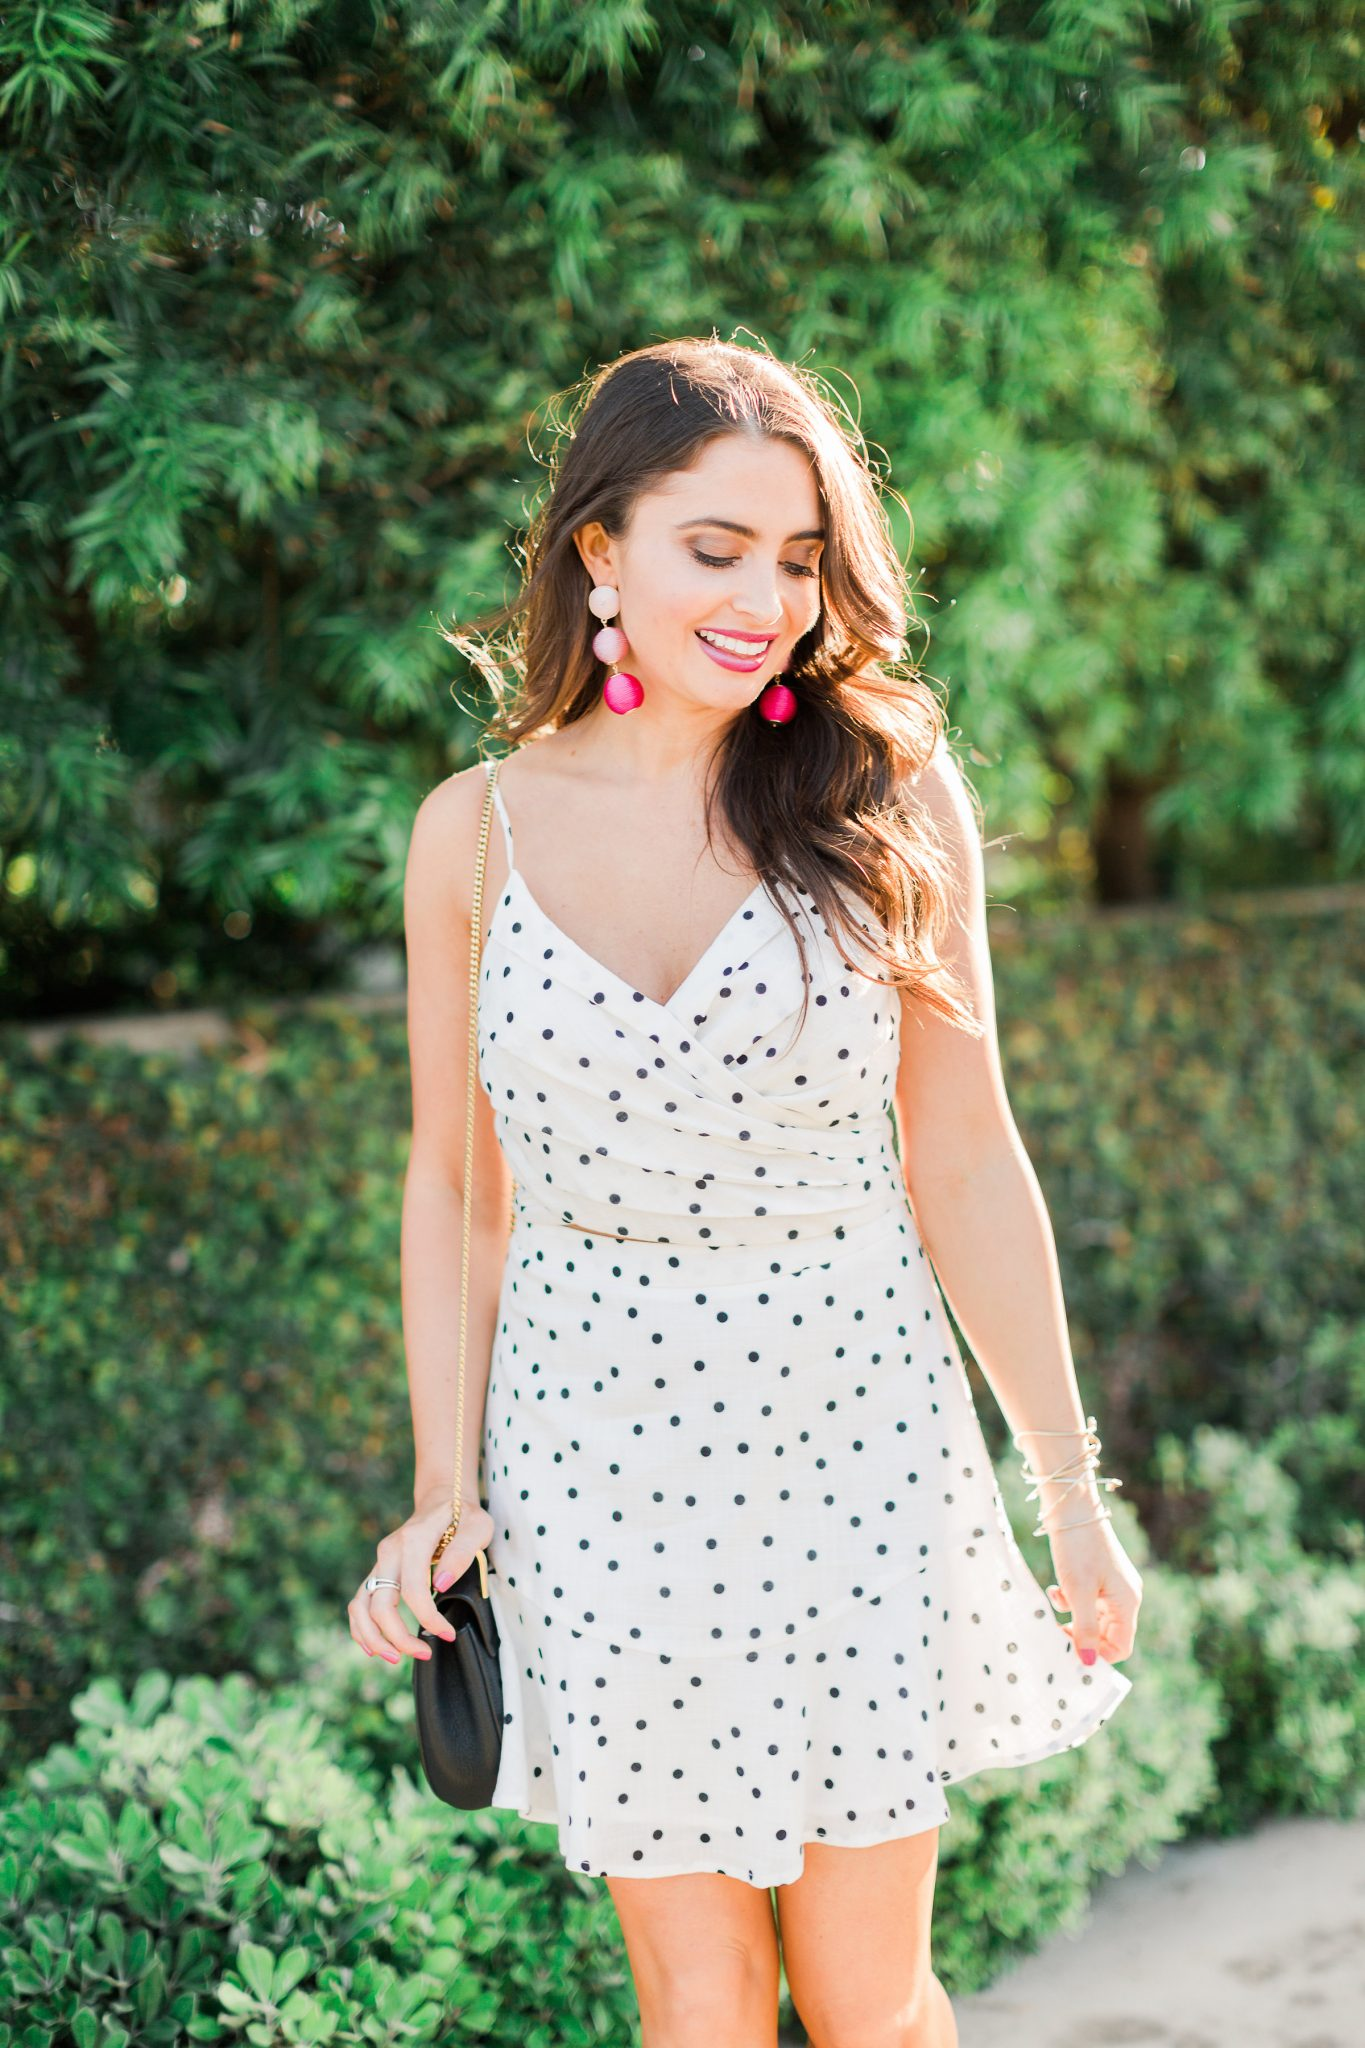 black and white polka dot set - Polka Dot Clothing styled by popular Orange County fashion blogger, Maxie Elle